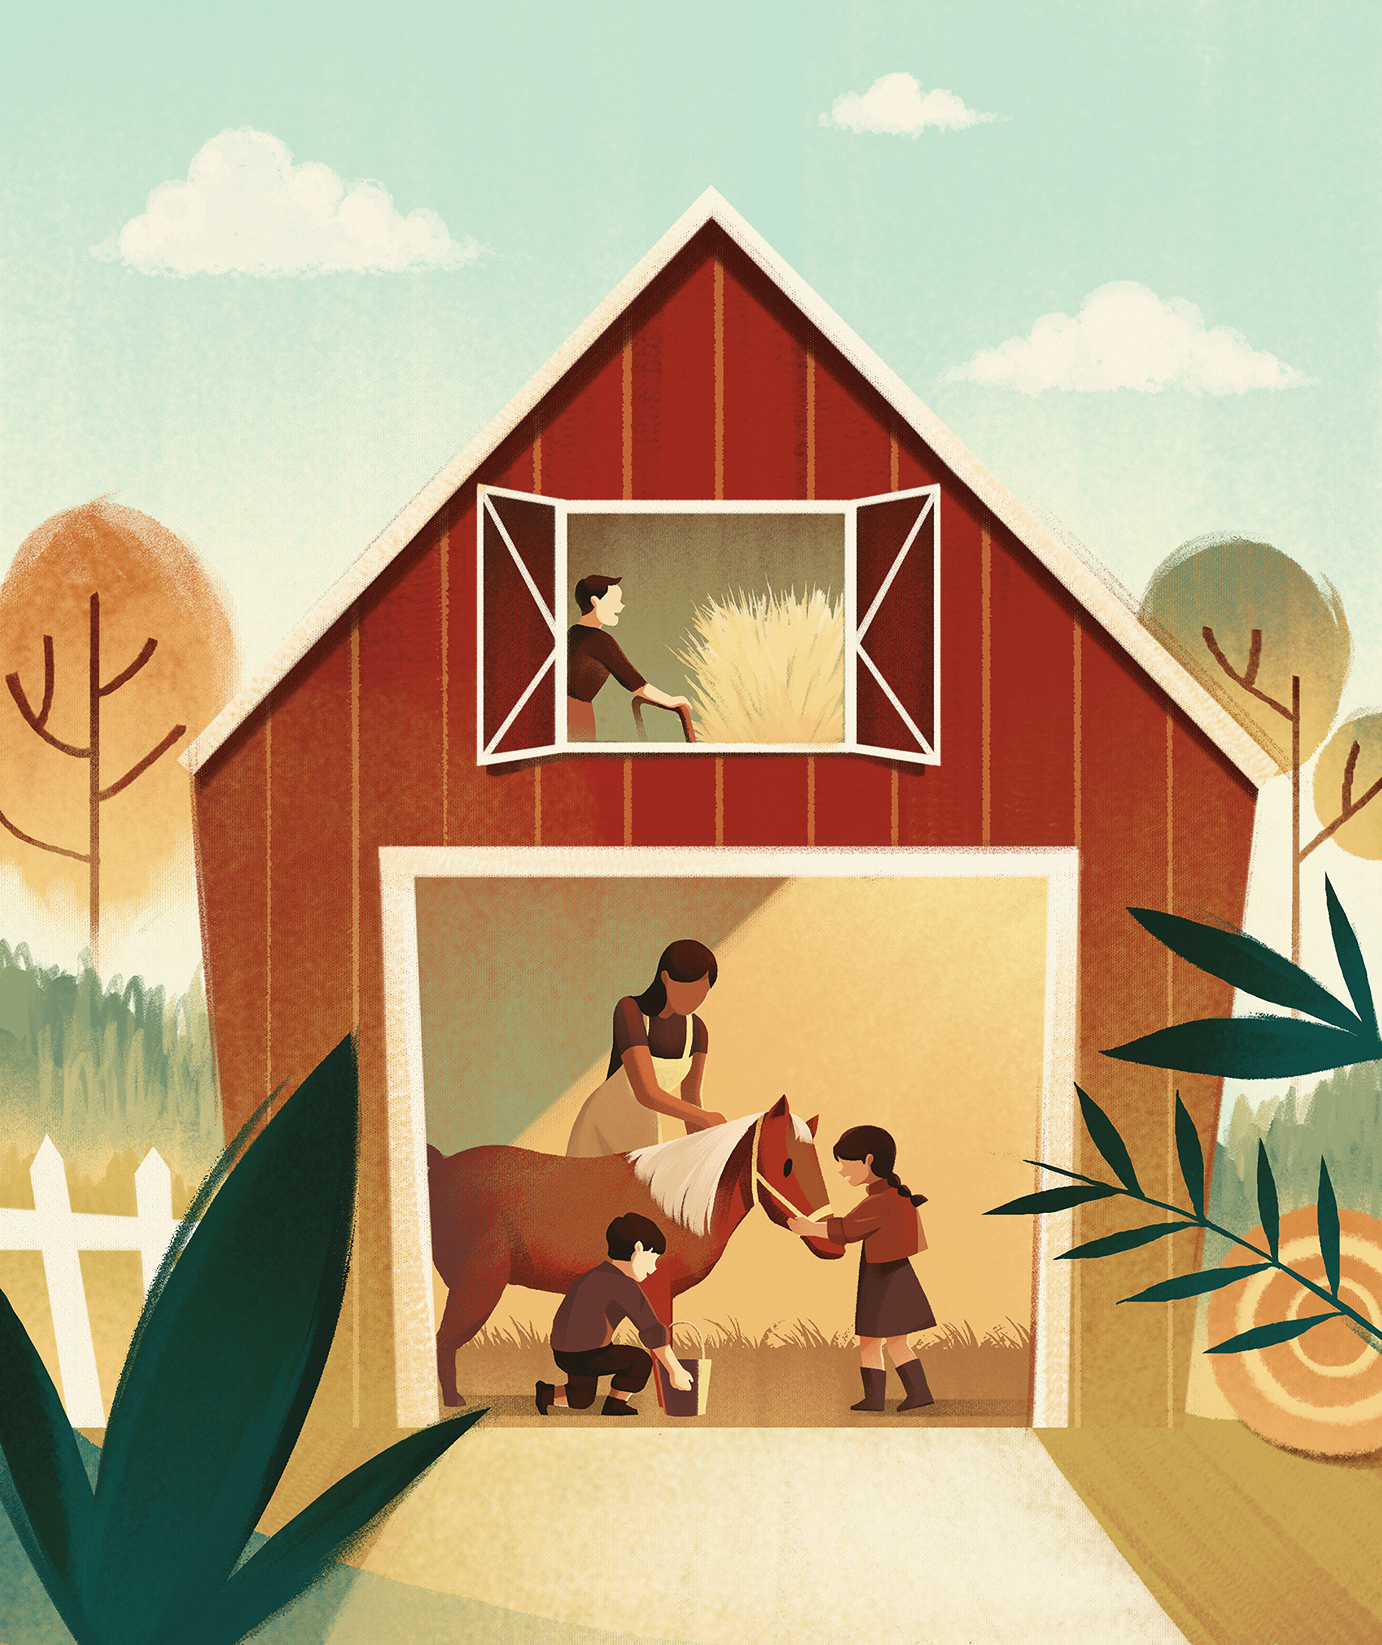 Illustration: family helping animals in barn